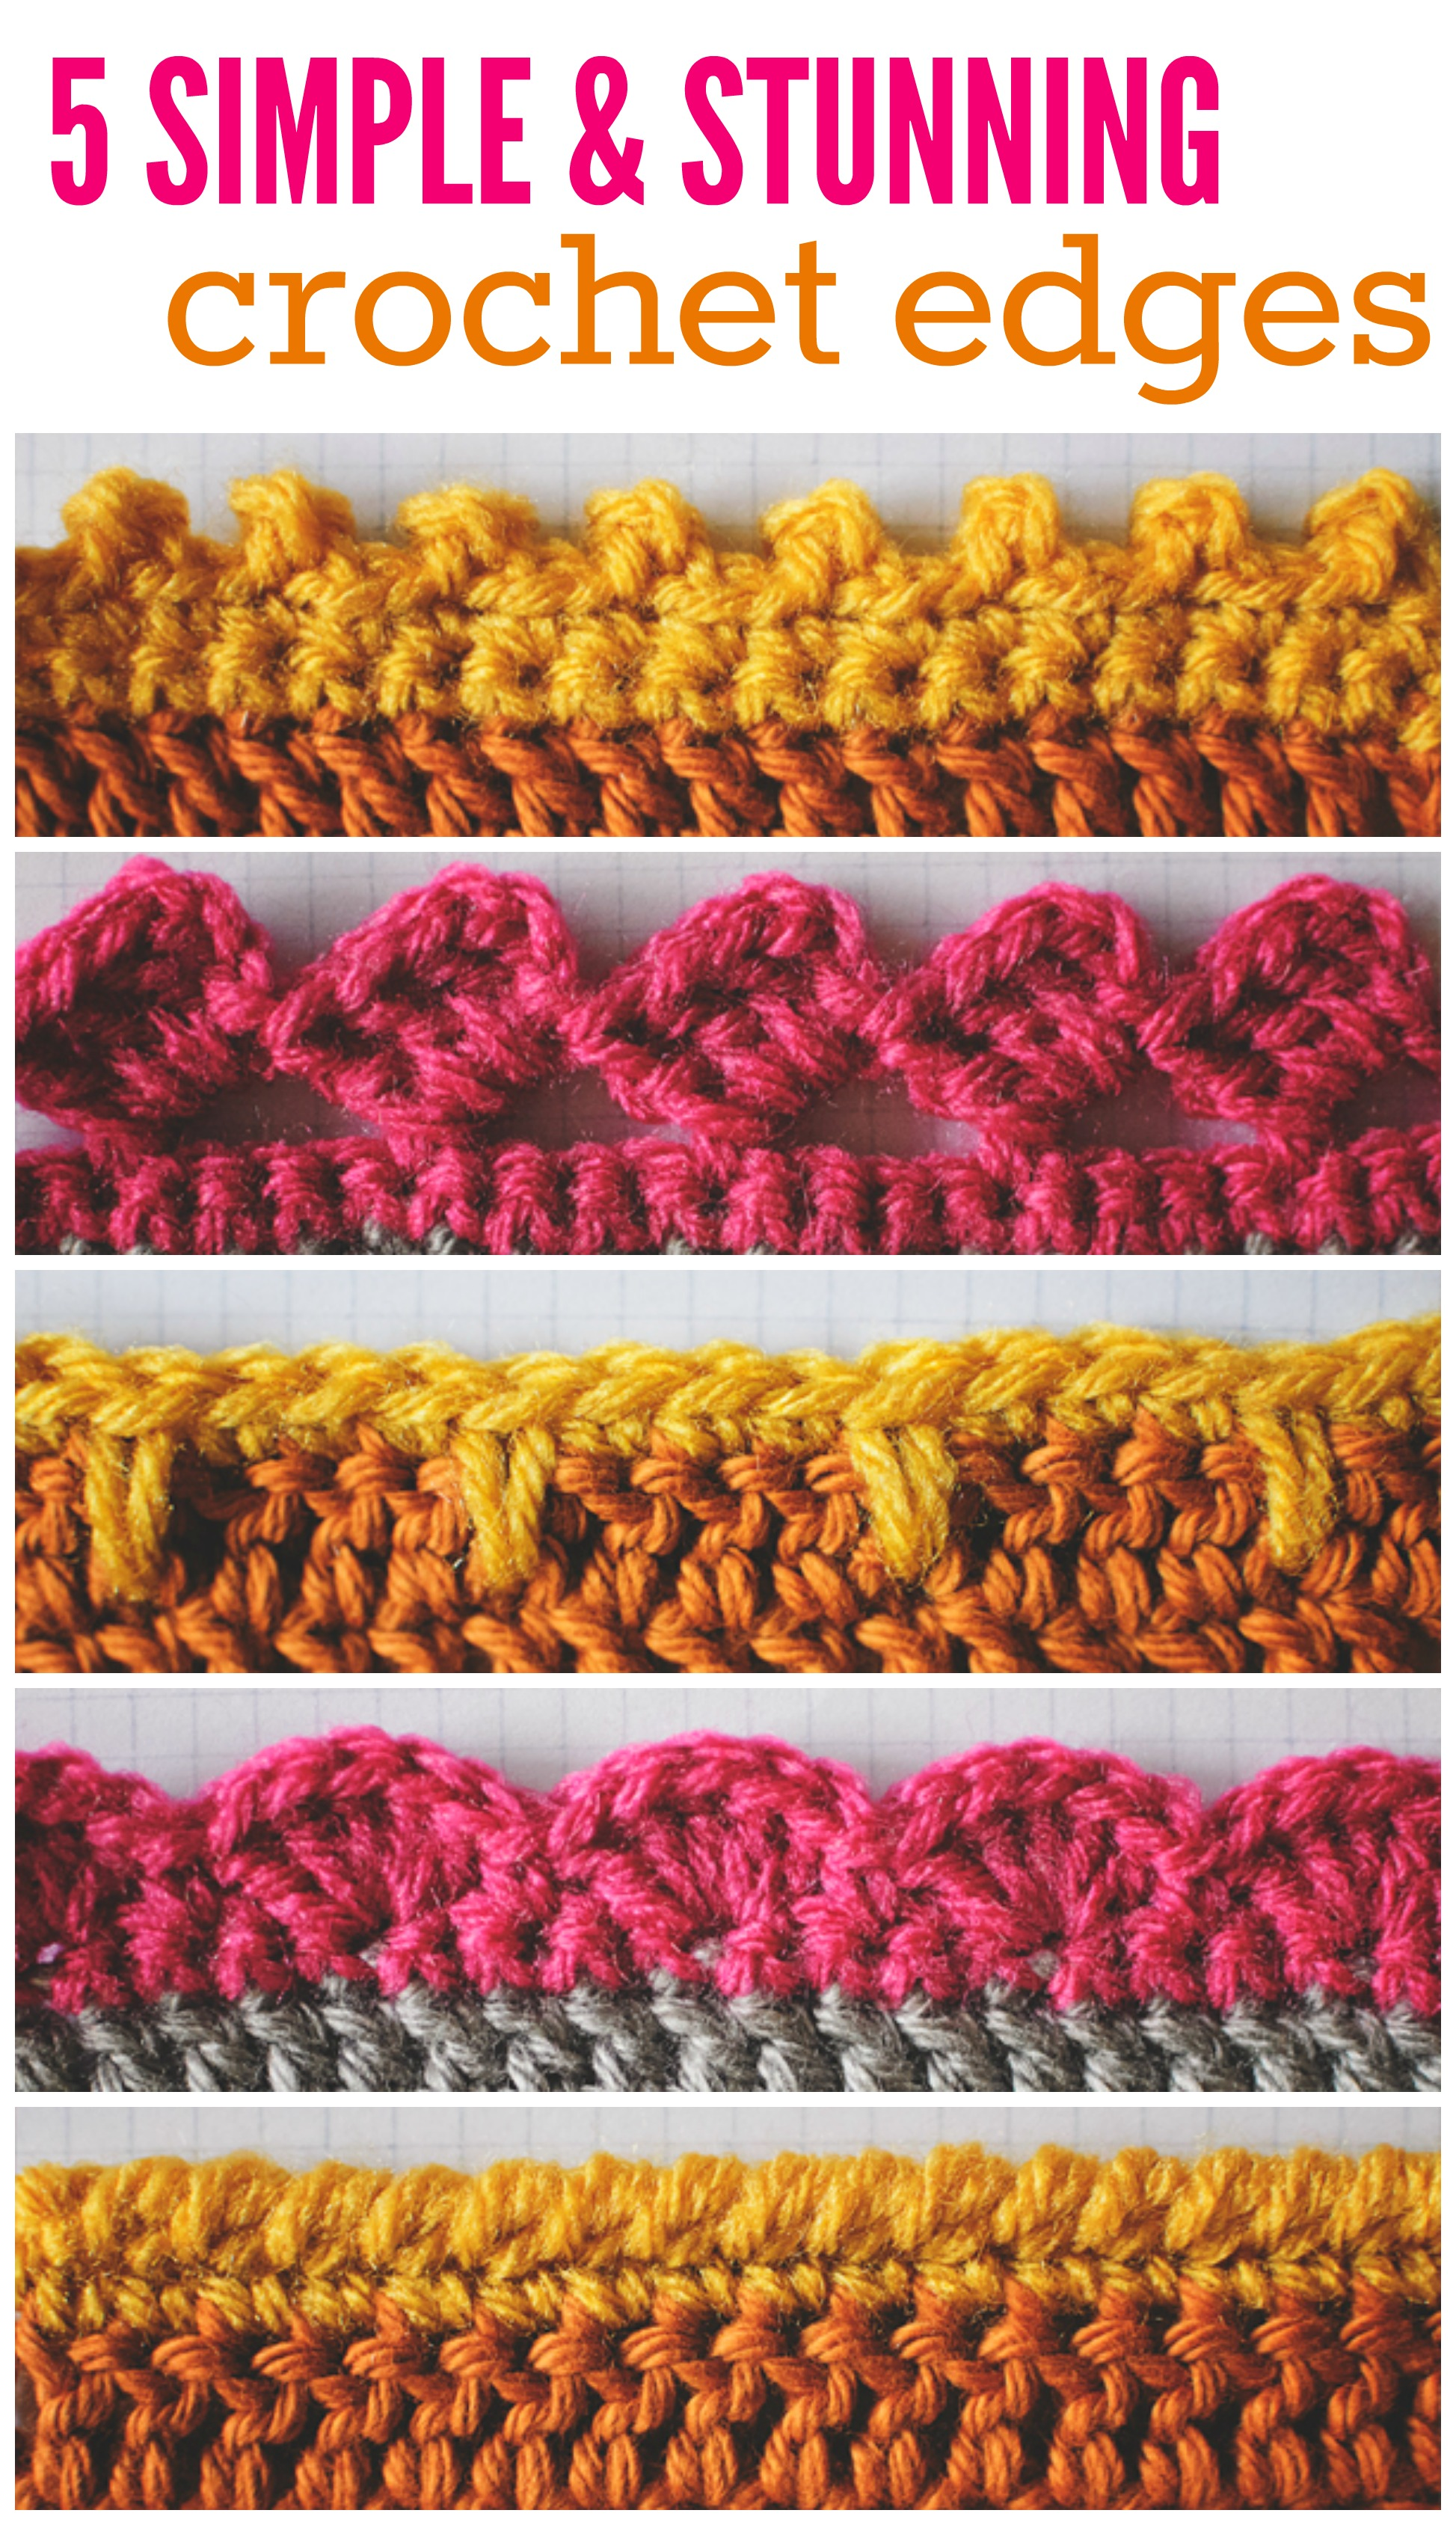 5 Simple And Stunning Crochet Edges Free Patterns